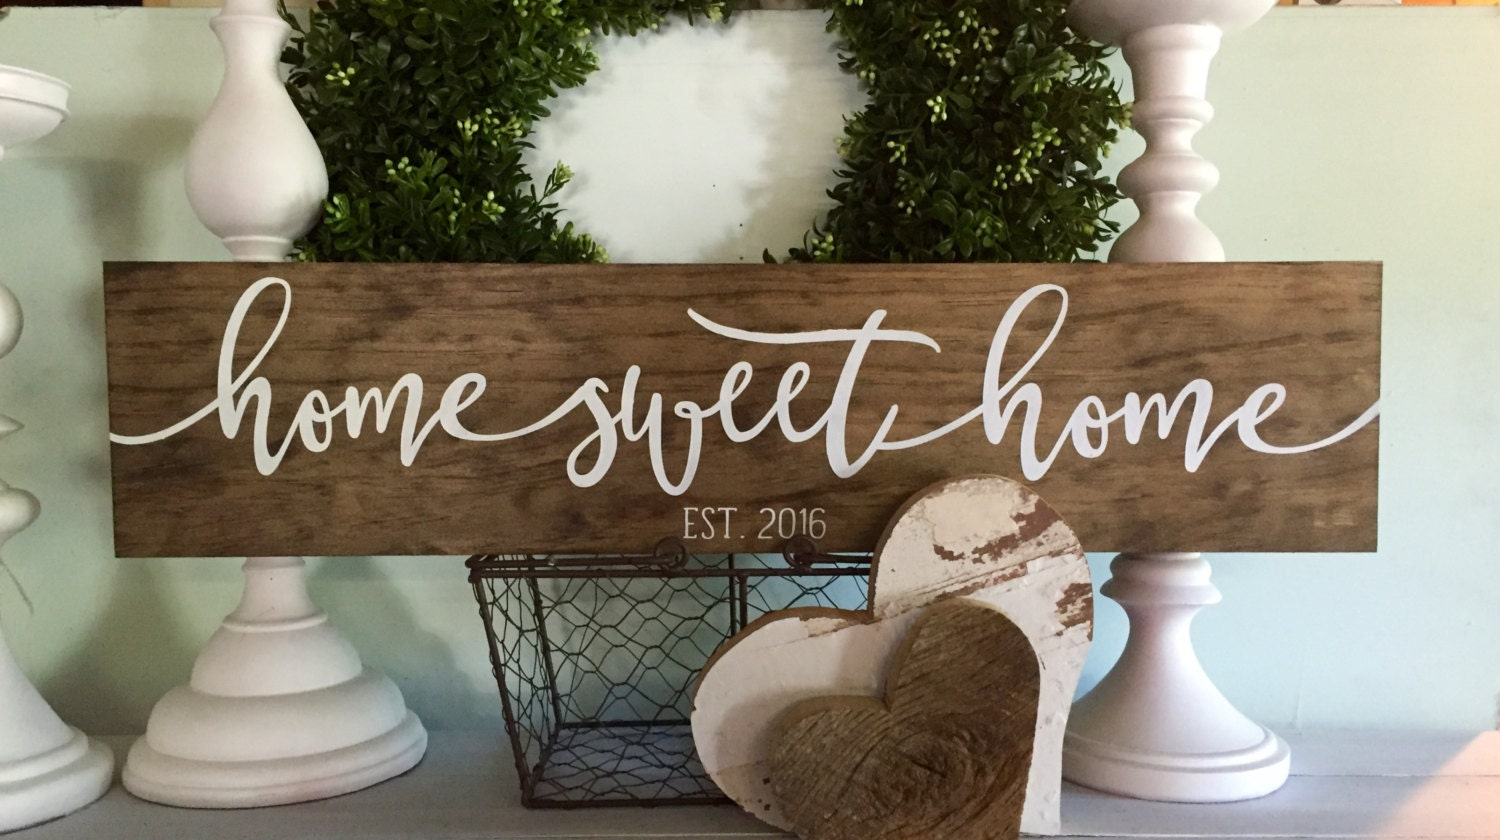 Home sweet home sign home sweet home home sweet home wood for Home sweet home arredamento